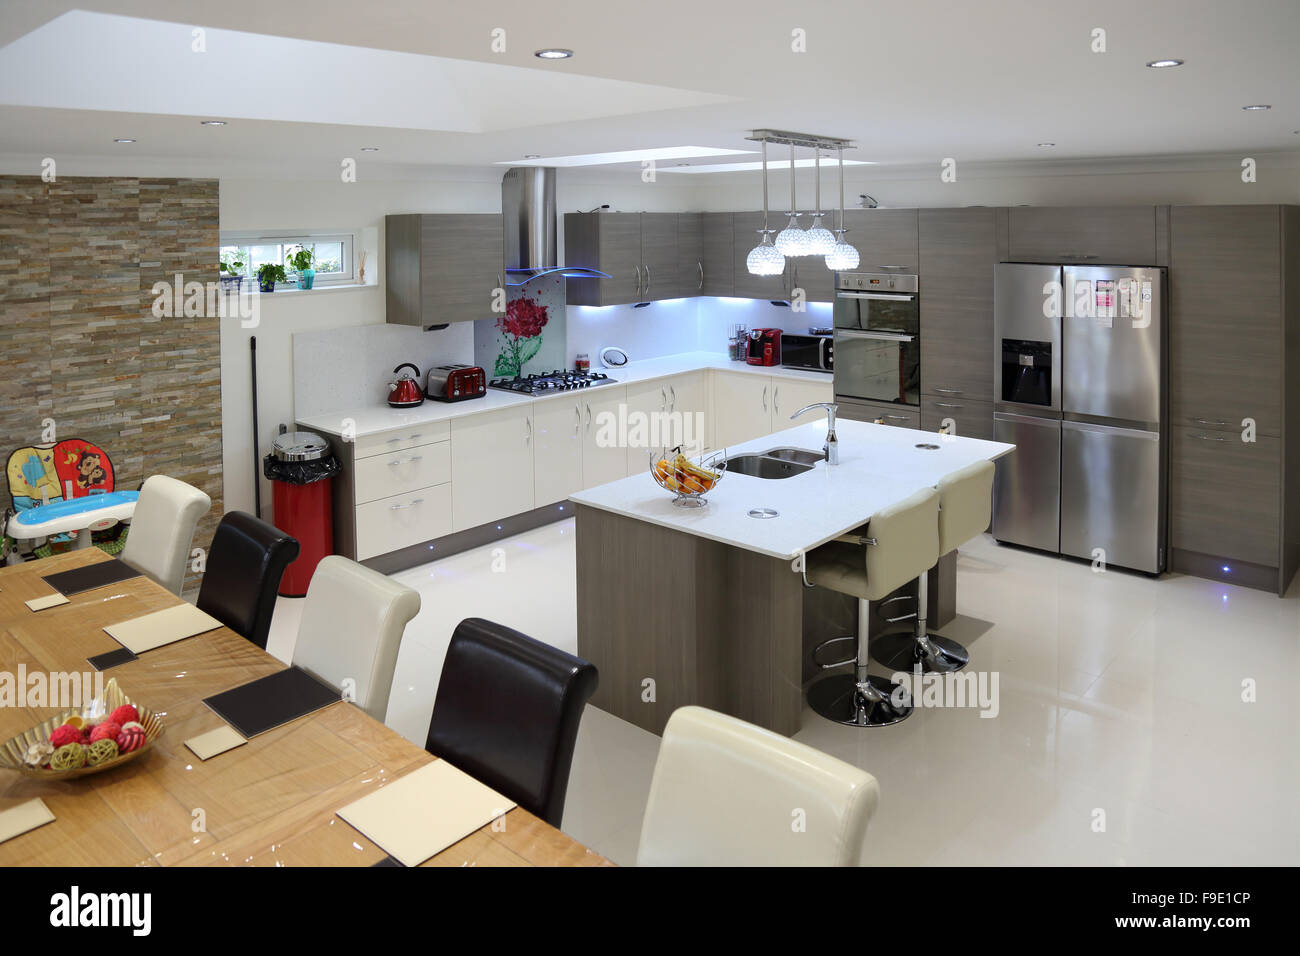 a large dining room in an open plan villa. a long table and chairs